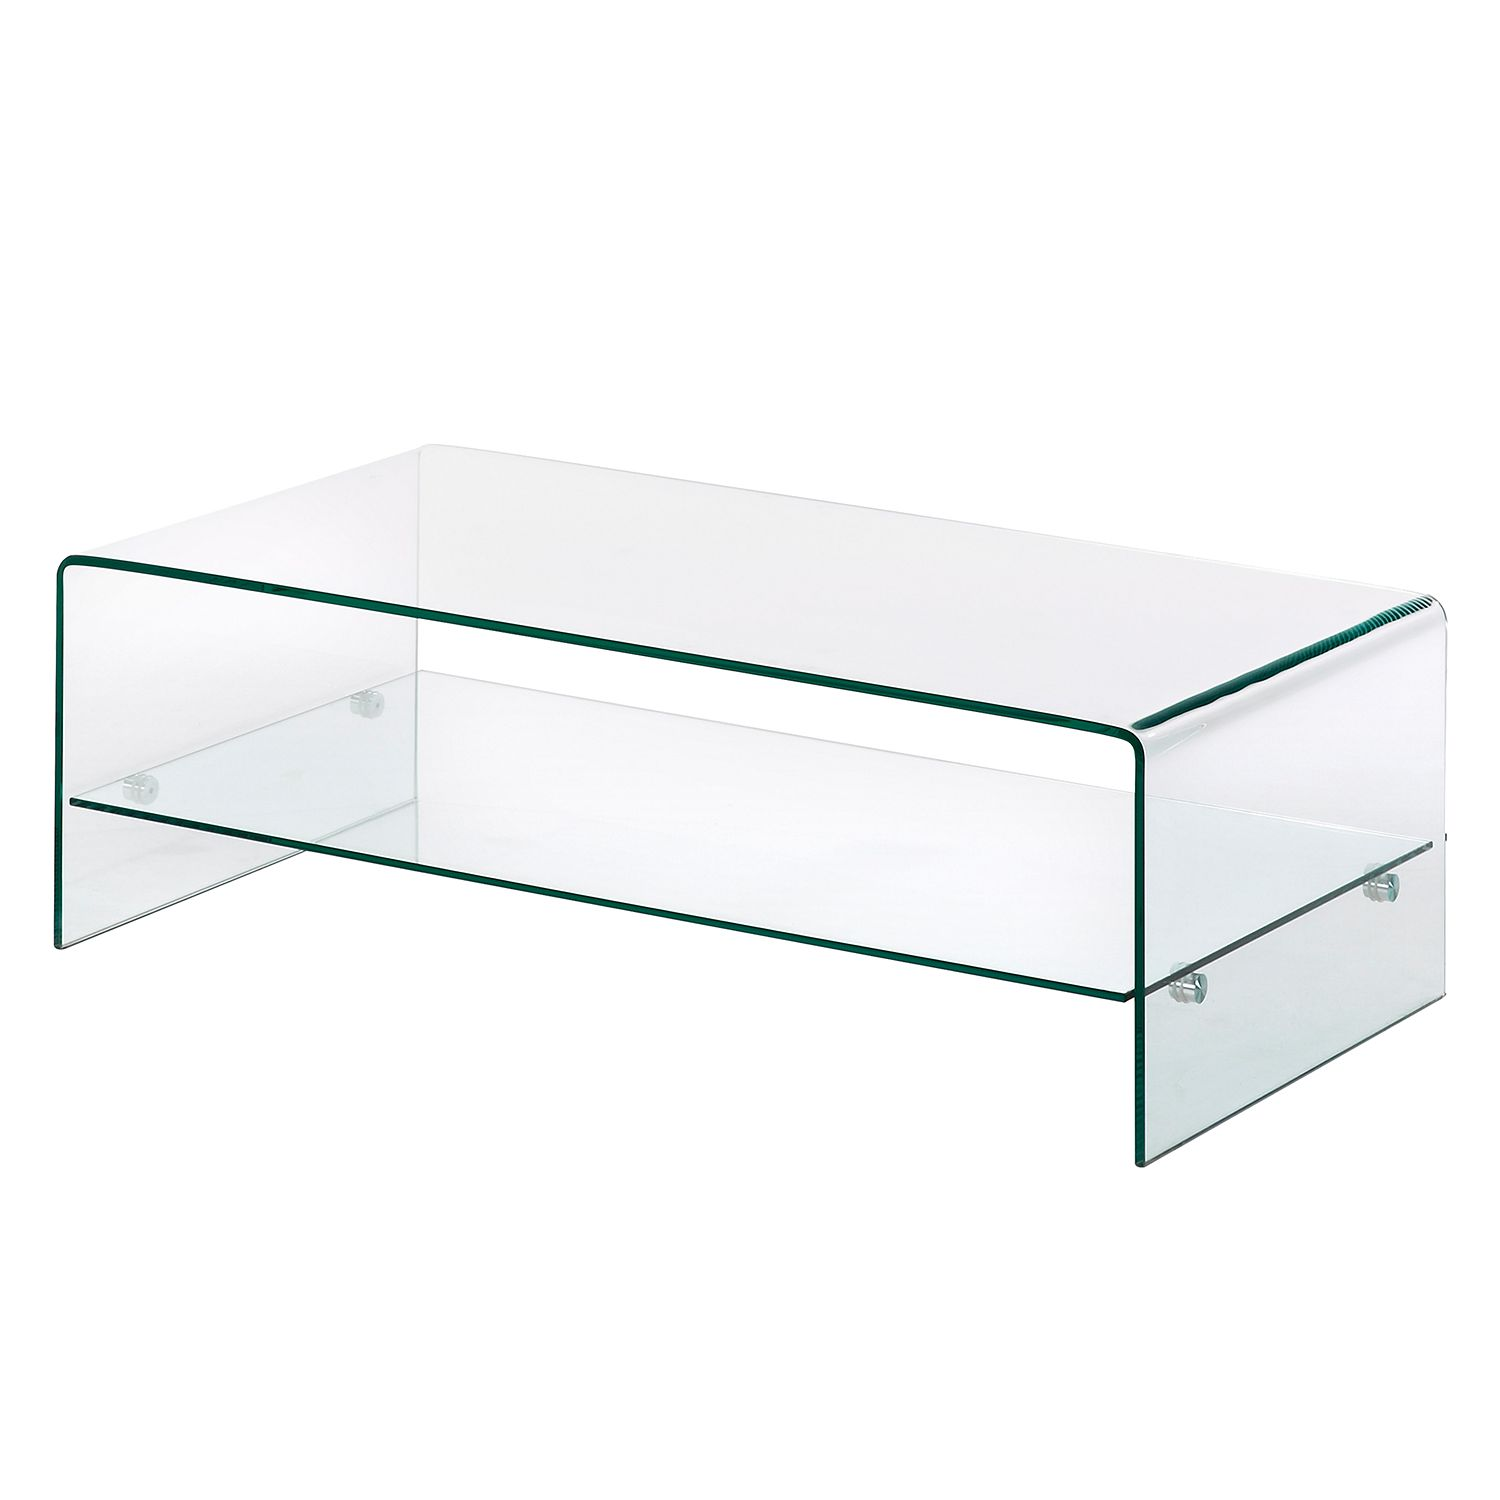 Table basse Drap - Verre, Fredriks